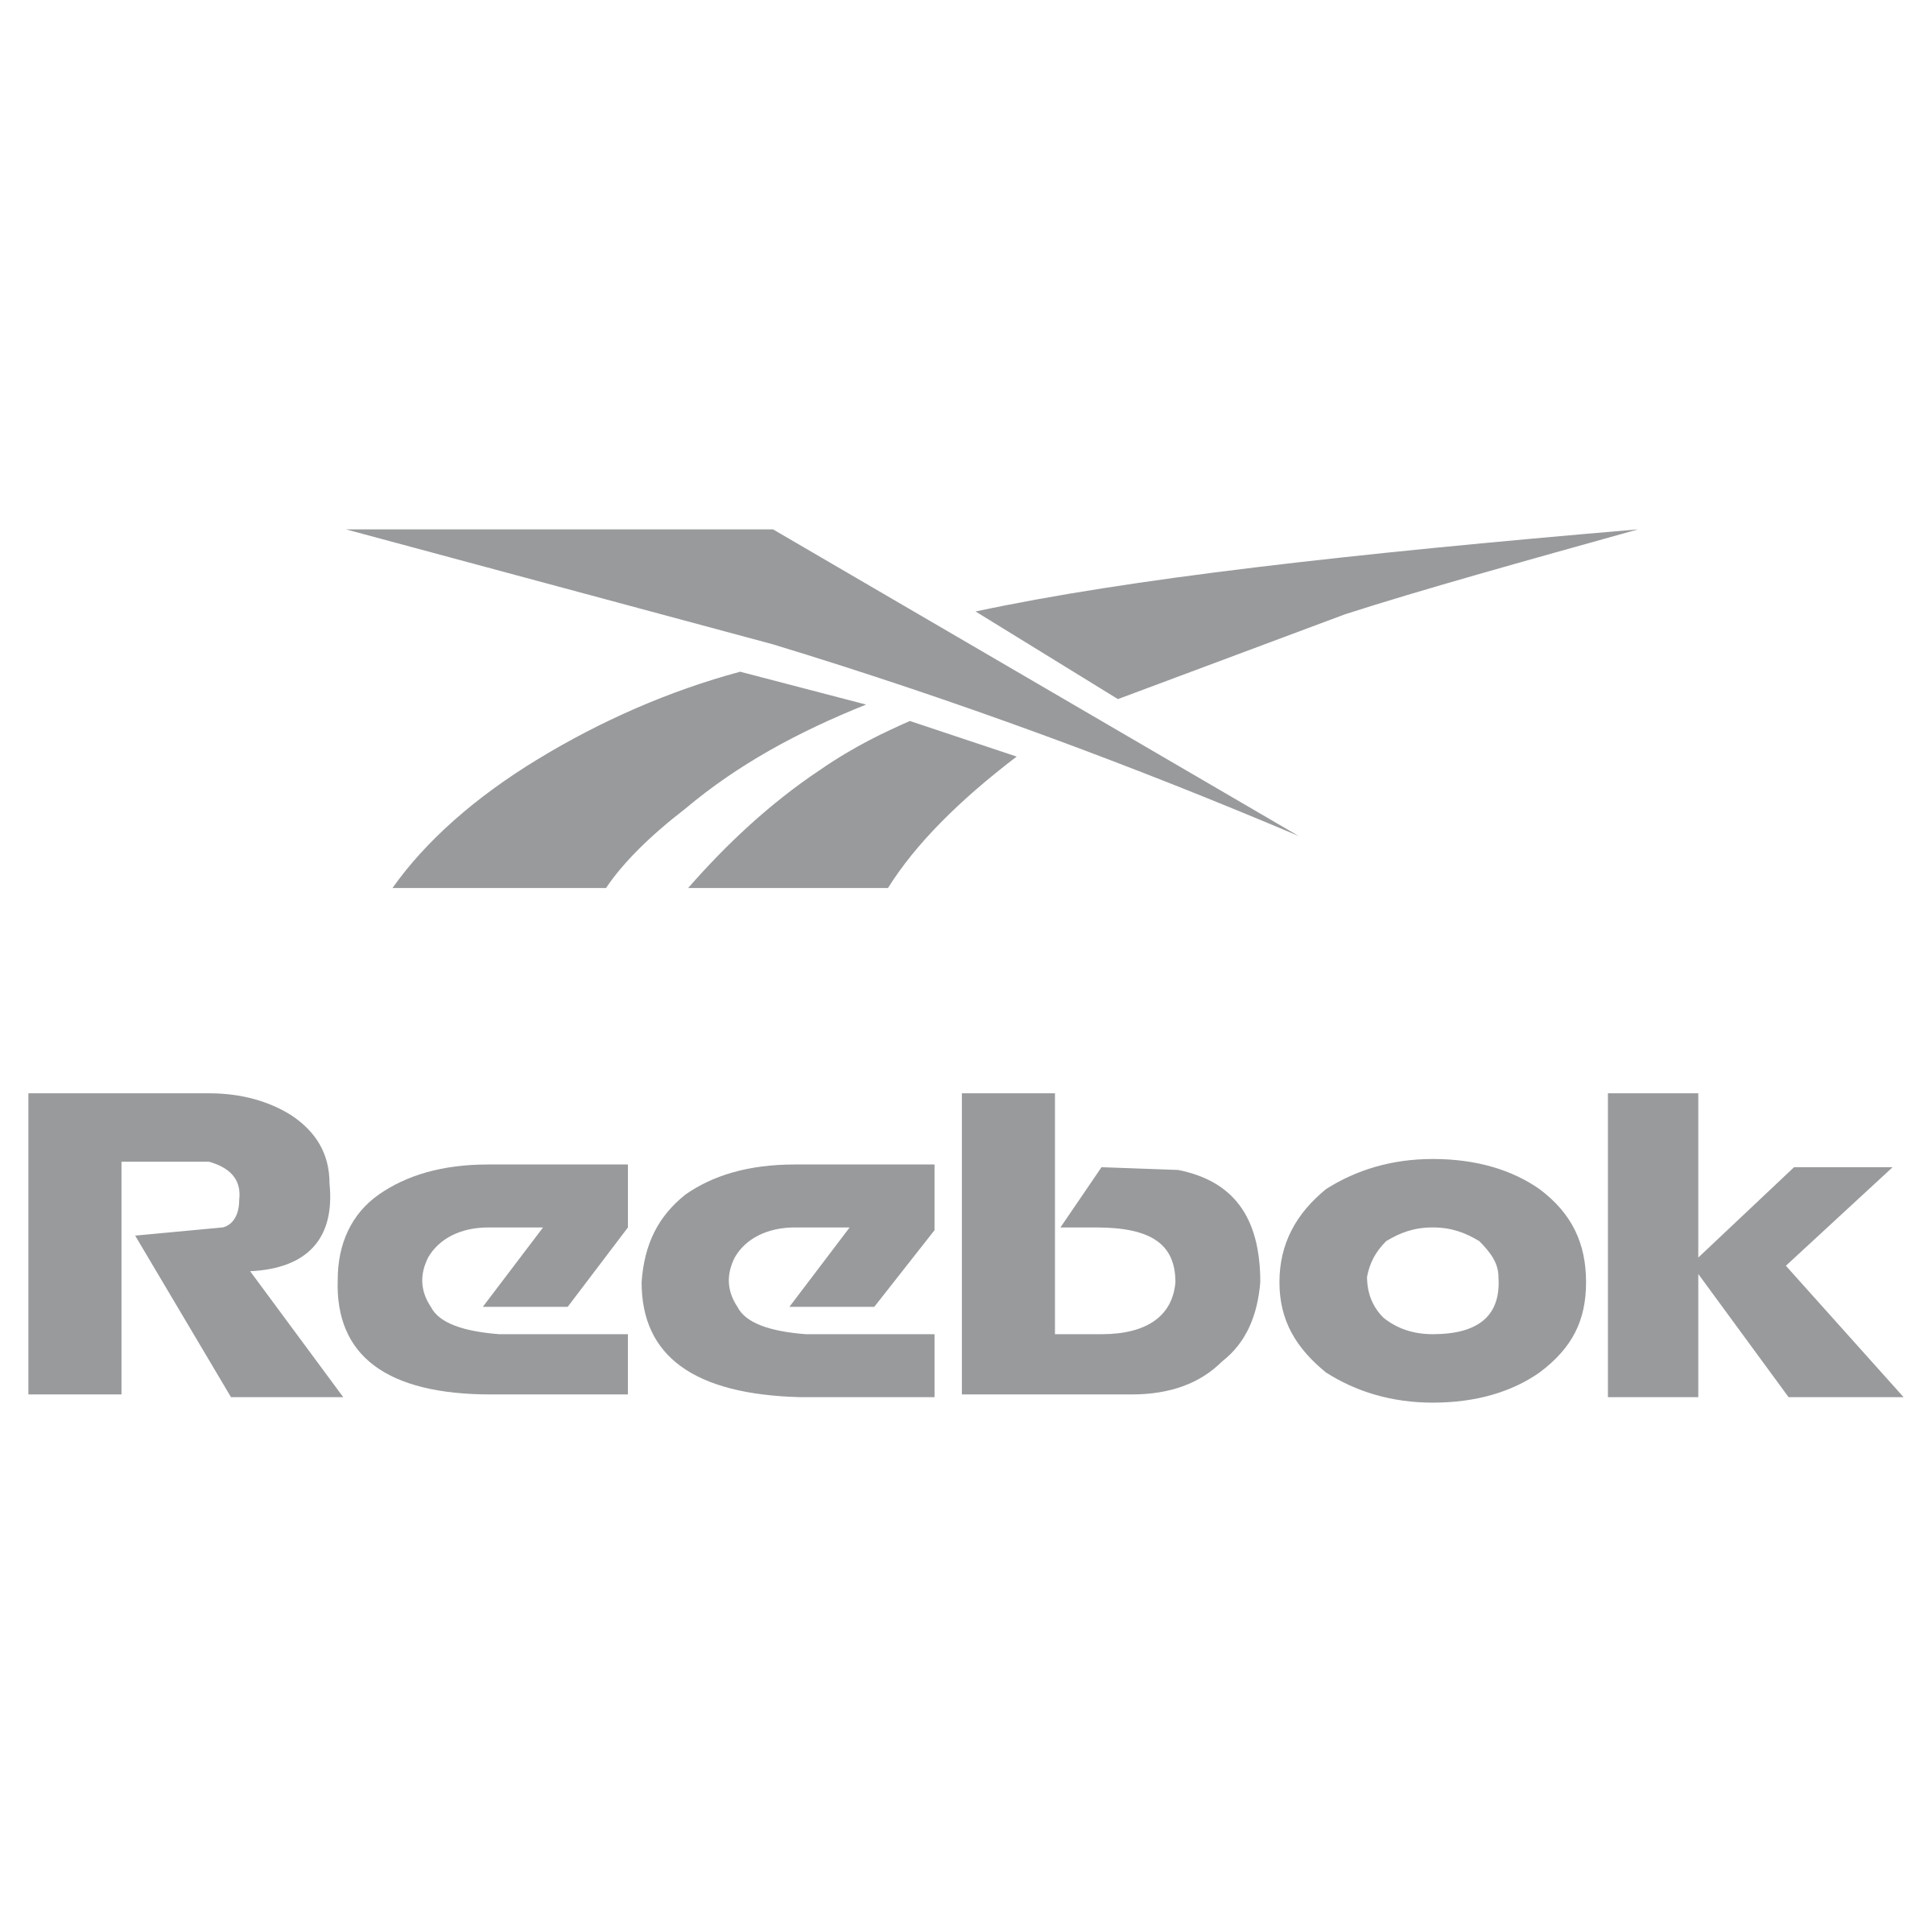 Reebok Logo Black And White -